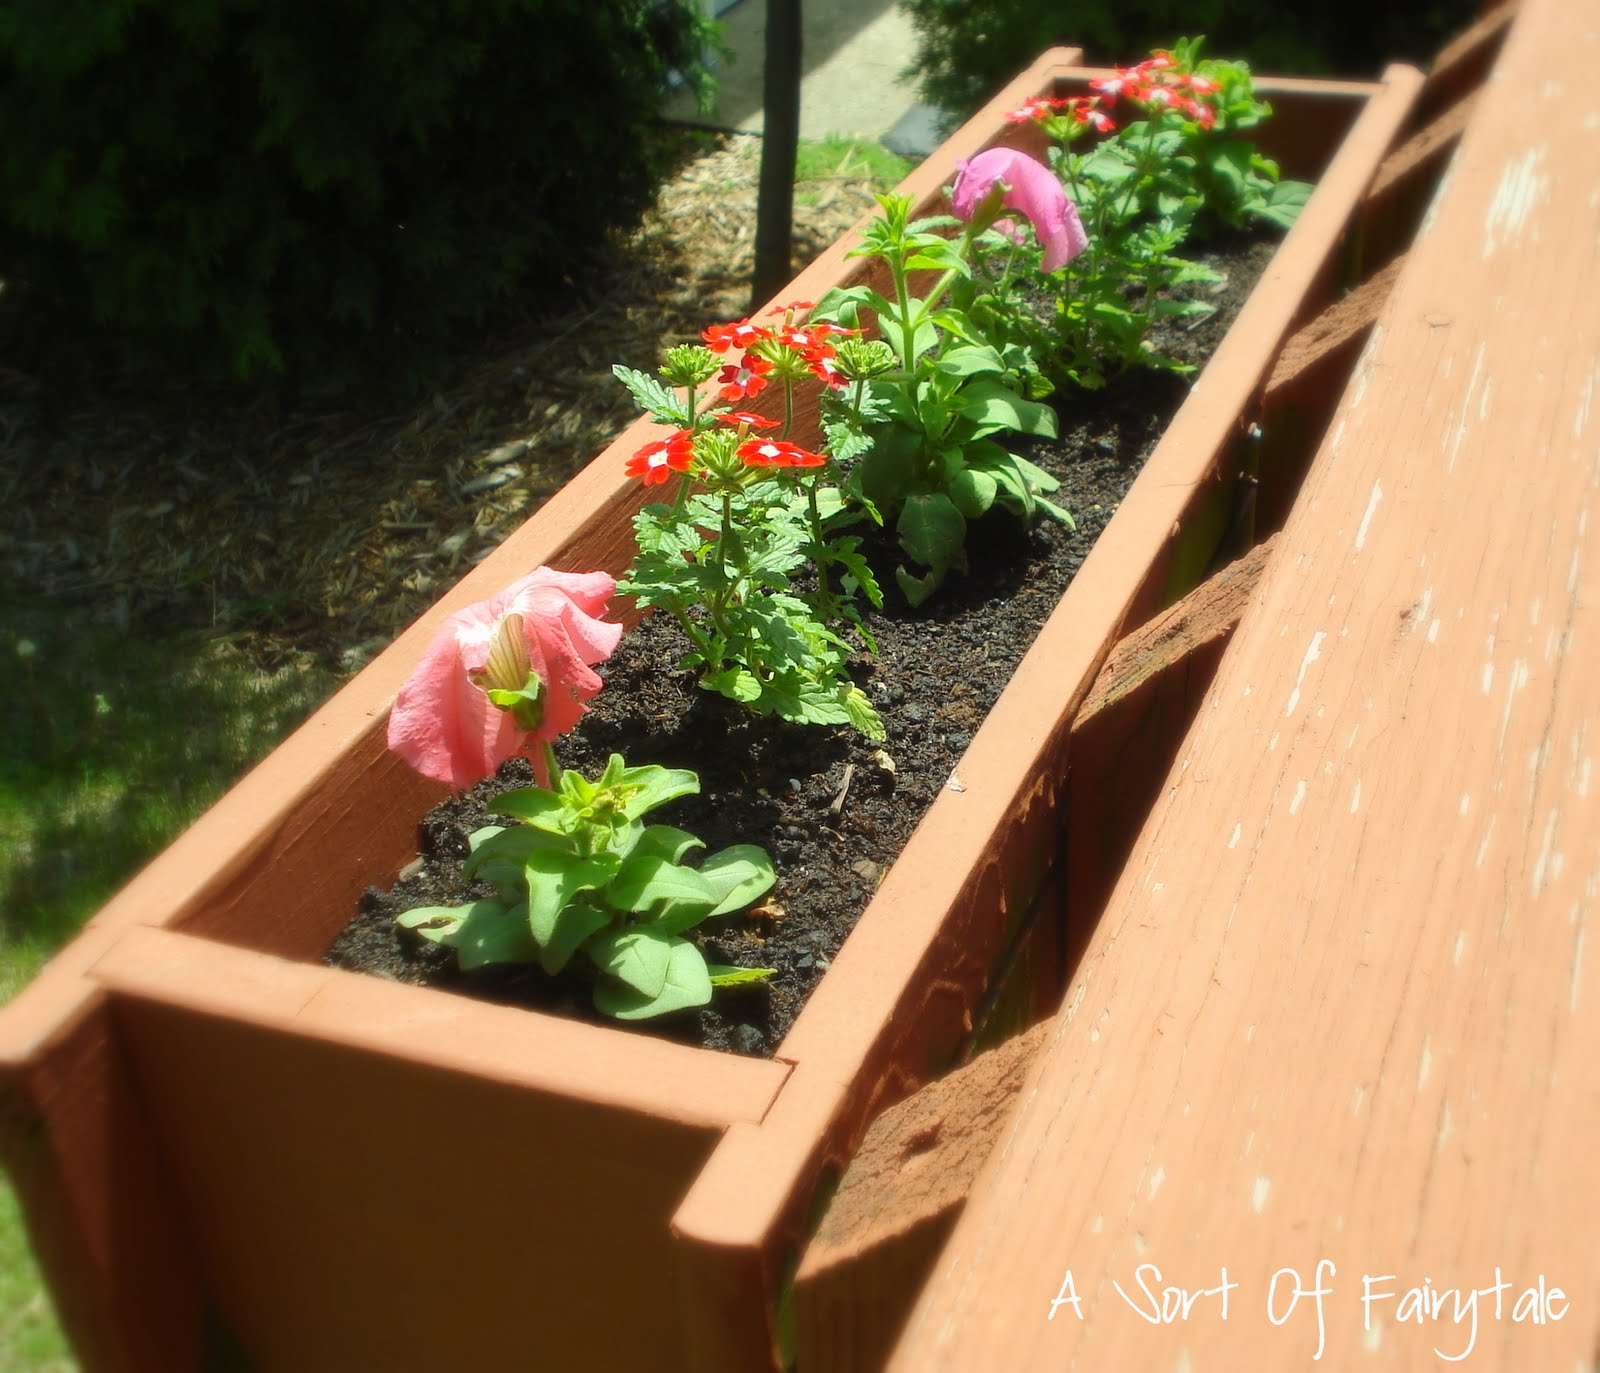 Deck Flower Box: A Sort Of Fairytale: Playing In The Dirt